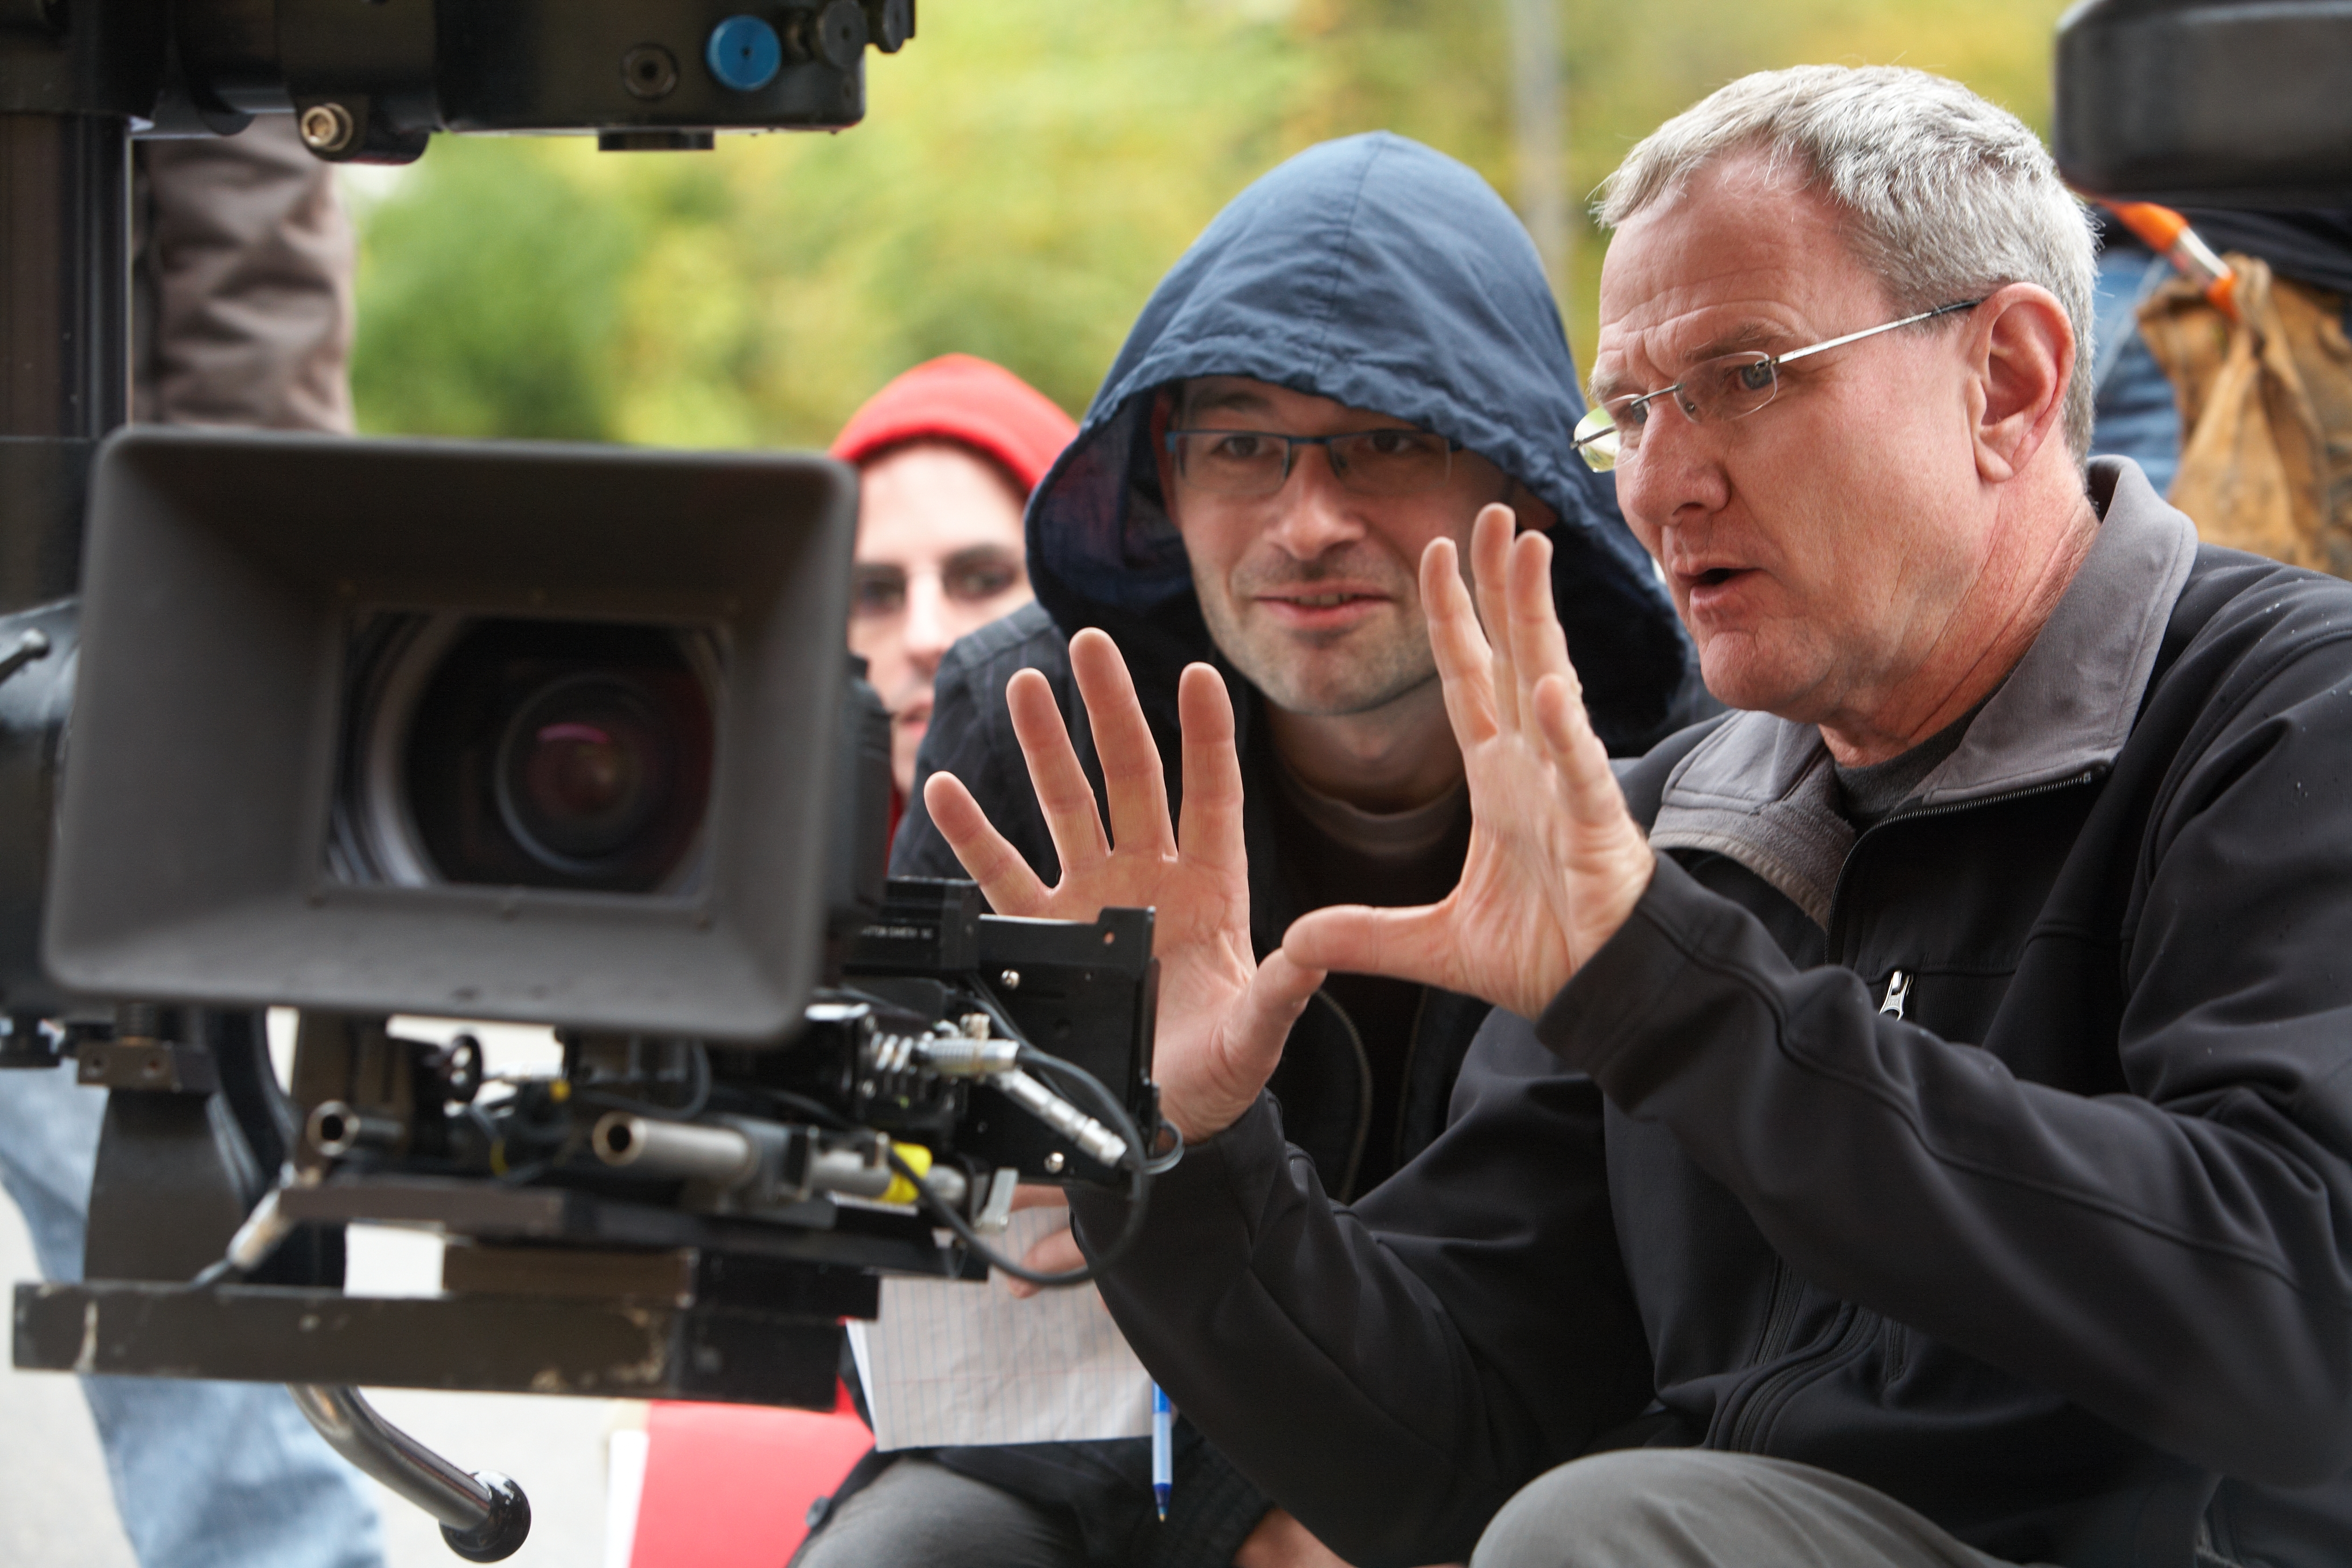 Director Marty Shea and Lon Stratton on the set of The Owner.